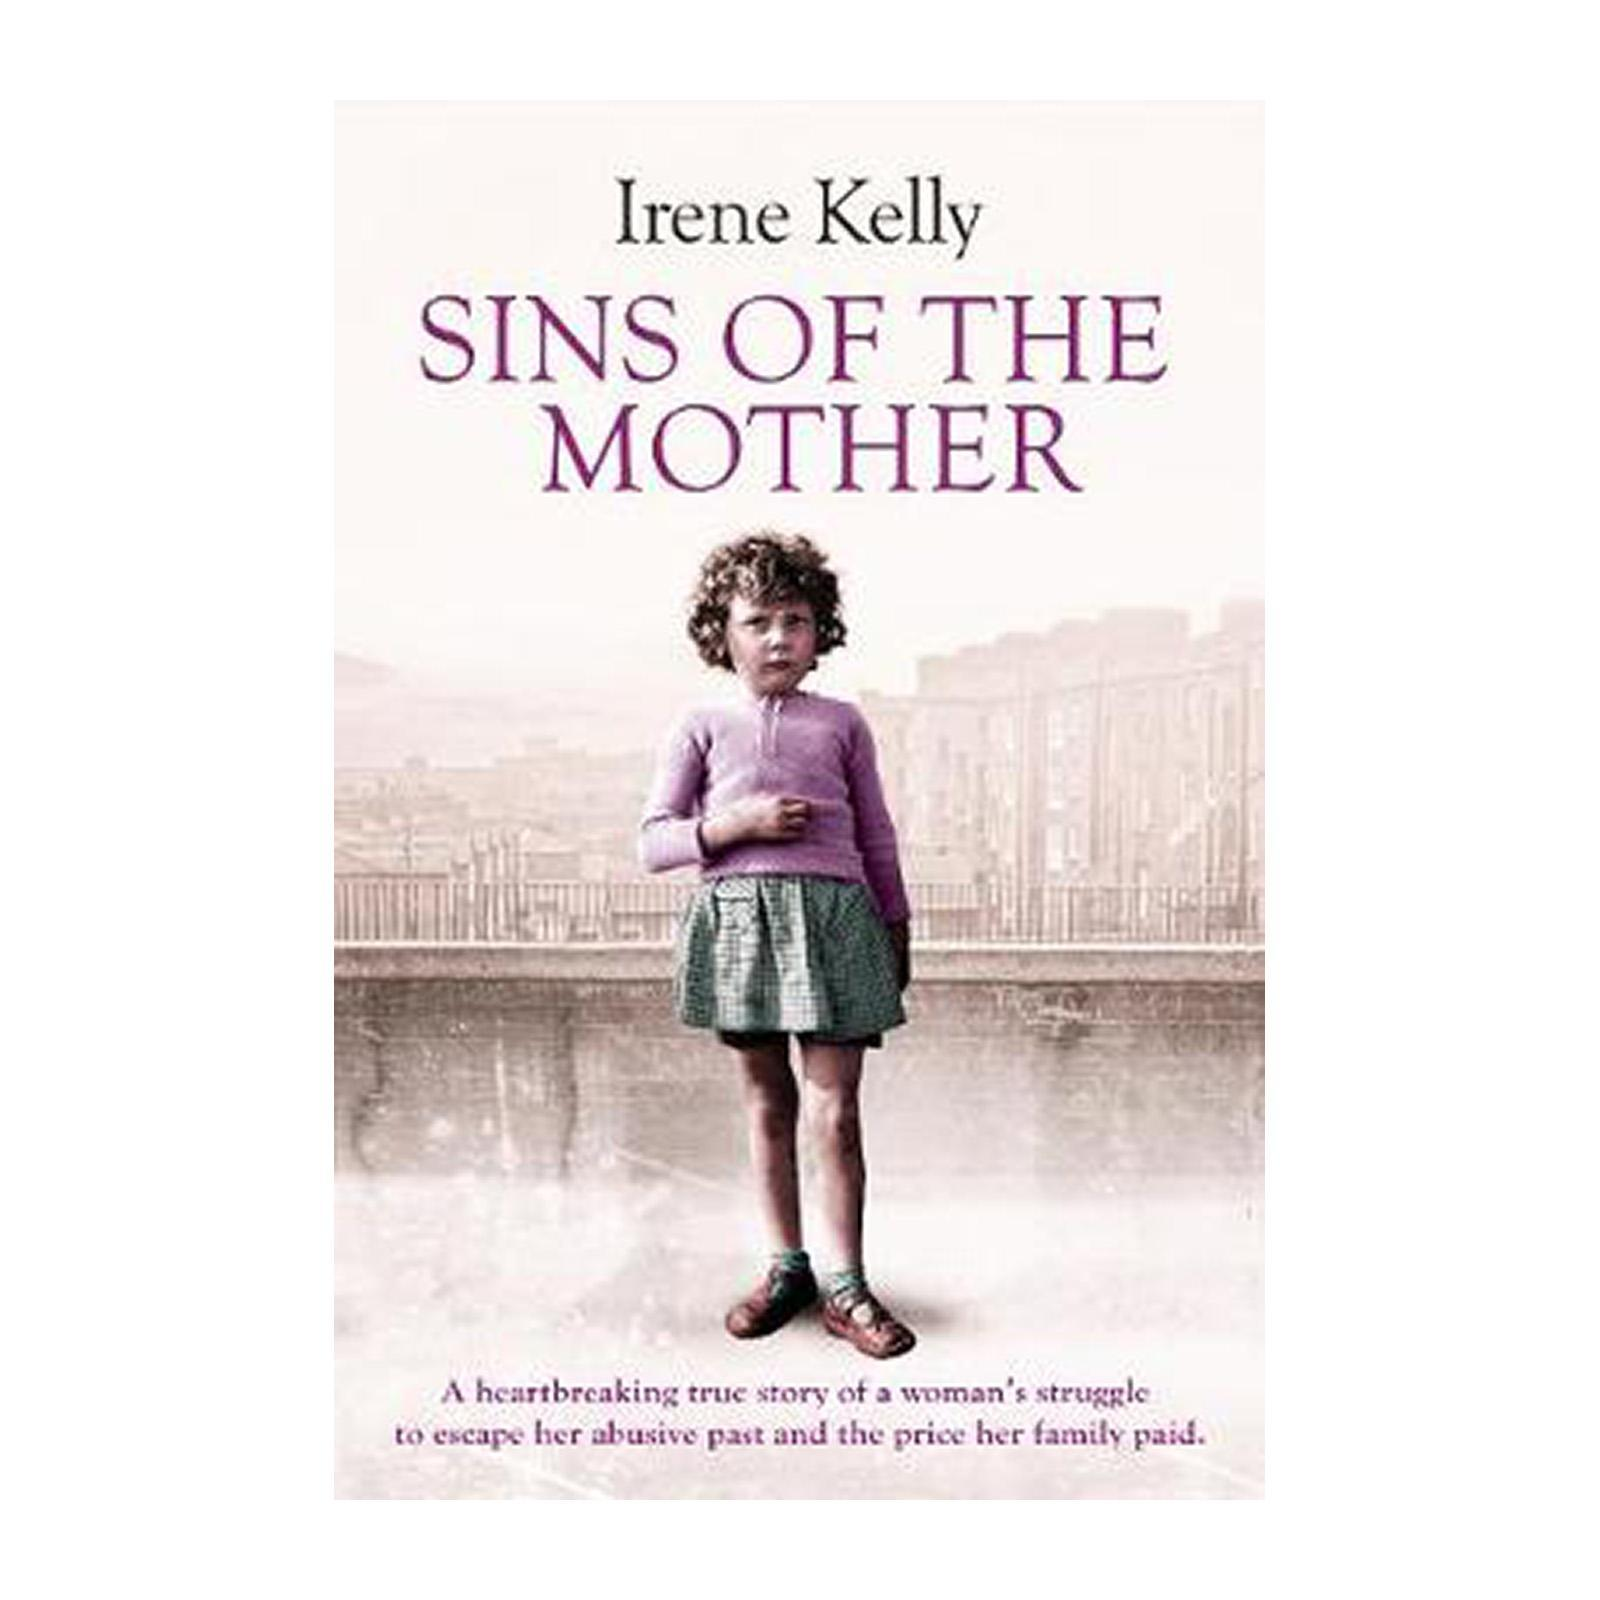 Sins Of The Mother: A Heartbreaking True Story Of A Womans Struggle To Escape Her Past And The Price Her Family Paid (Paperback)